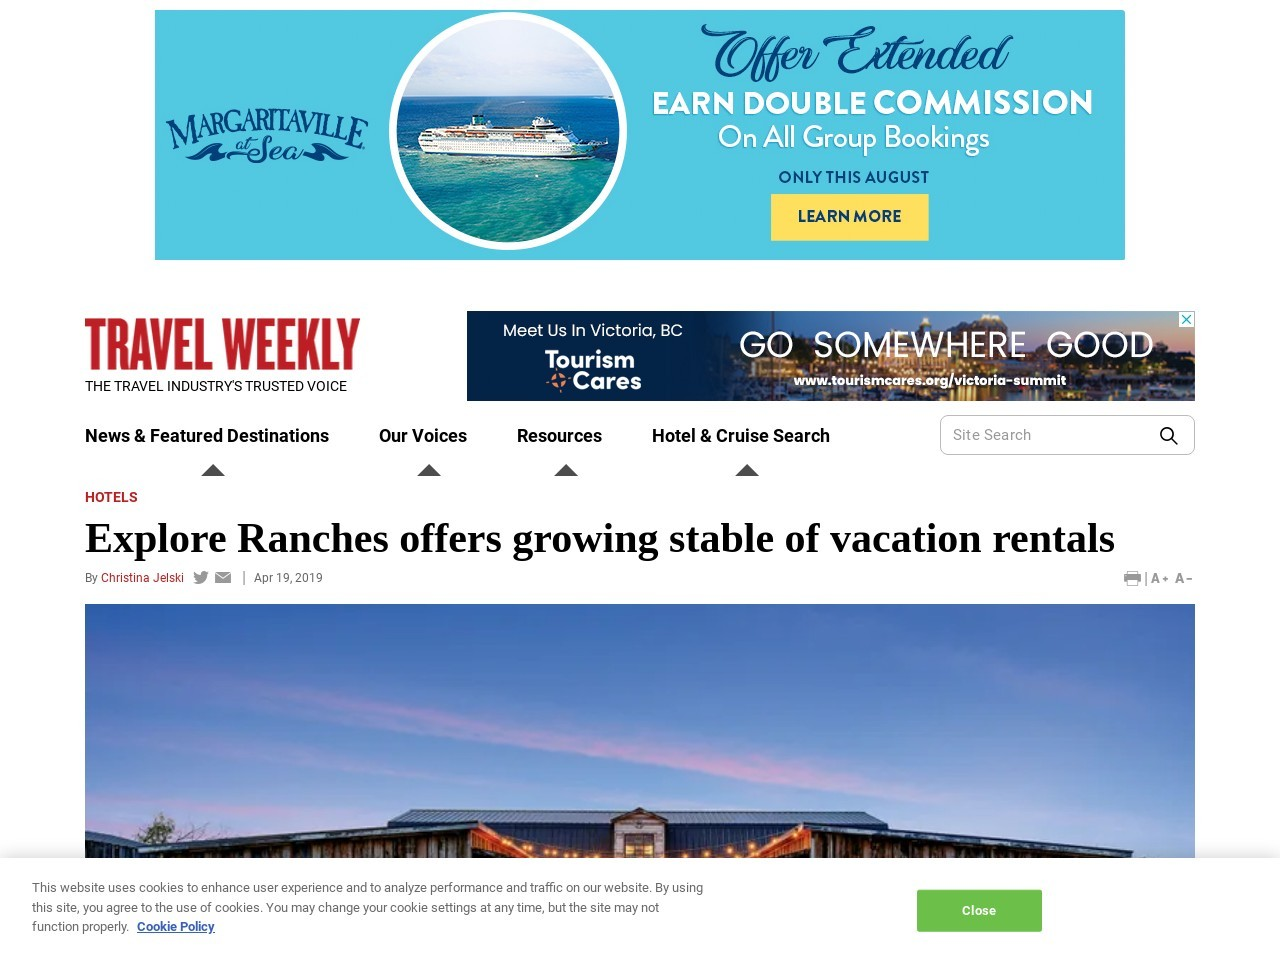 Explore Ranches offers growing stable of vacation rentals